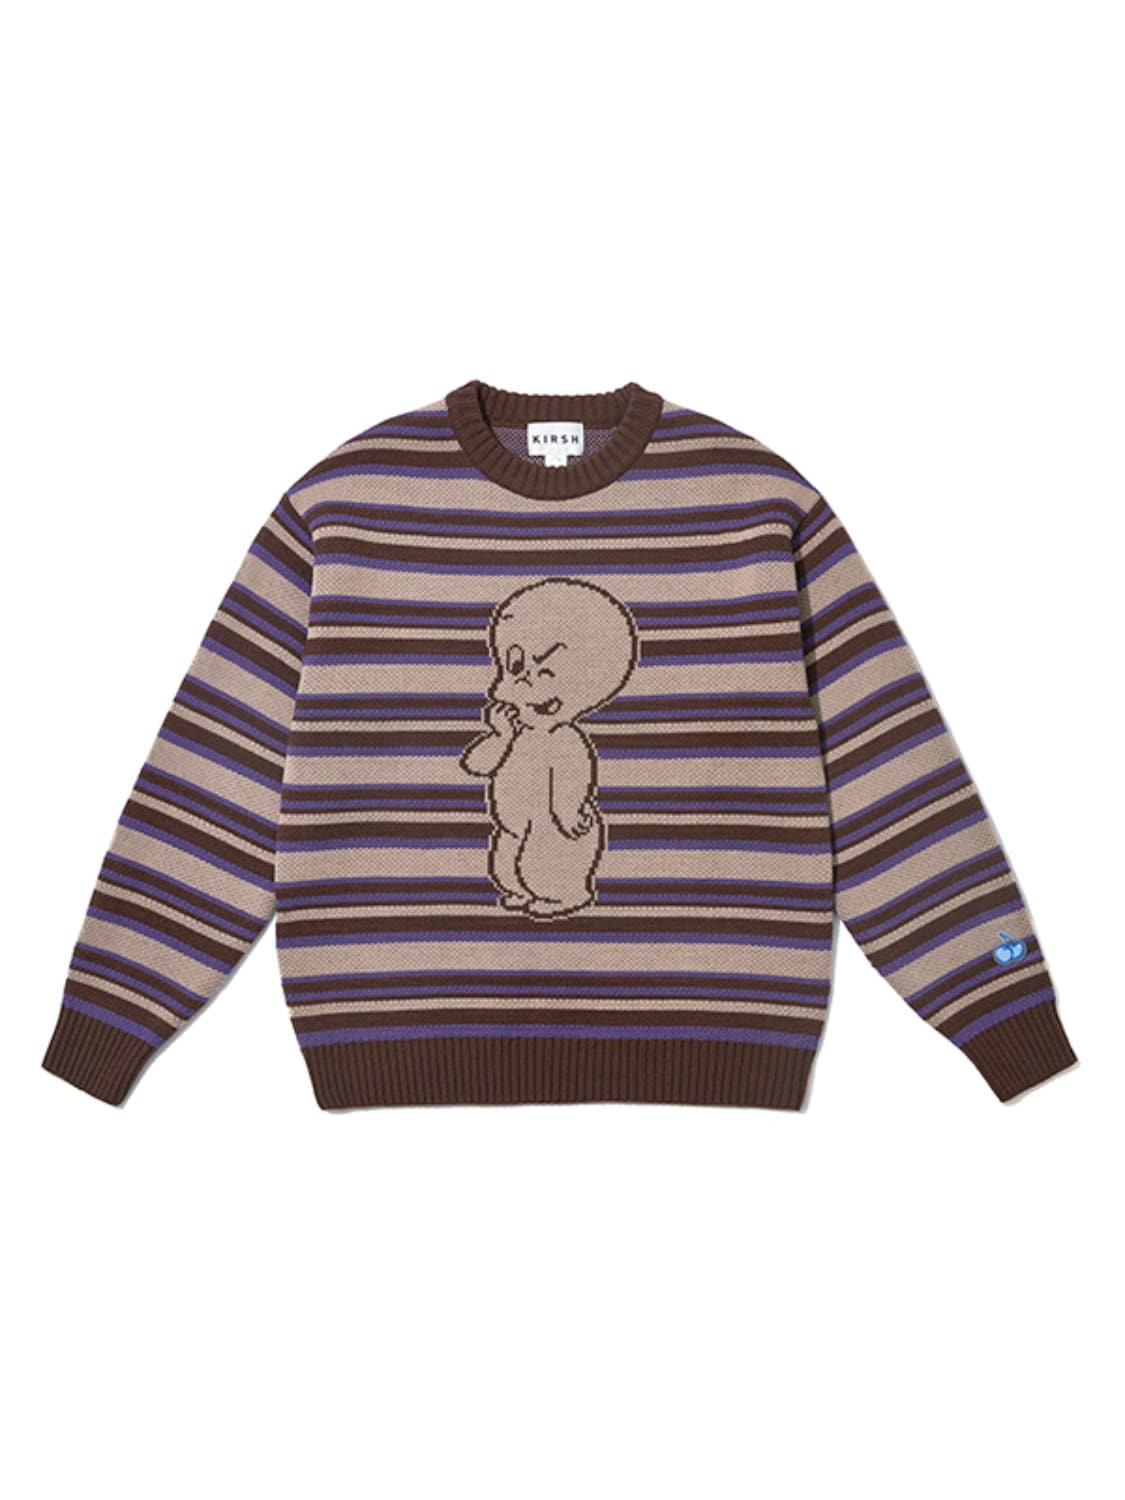 CASPER STRIPE KNIT JA [BROWN]